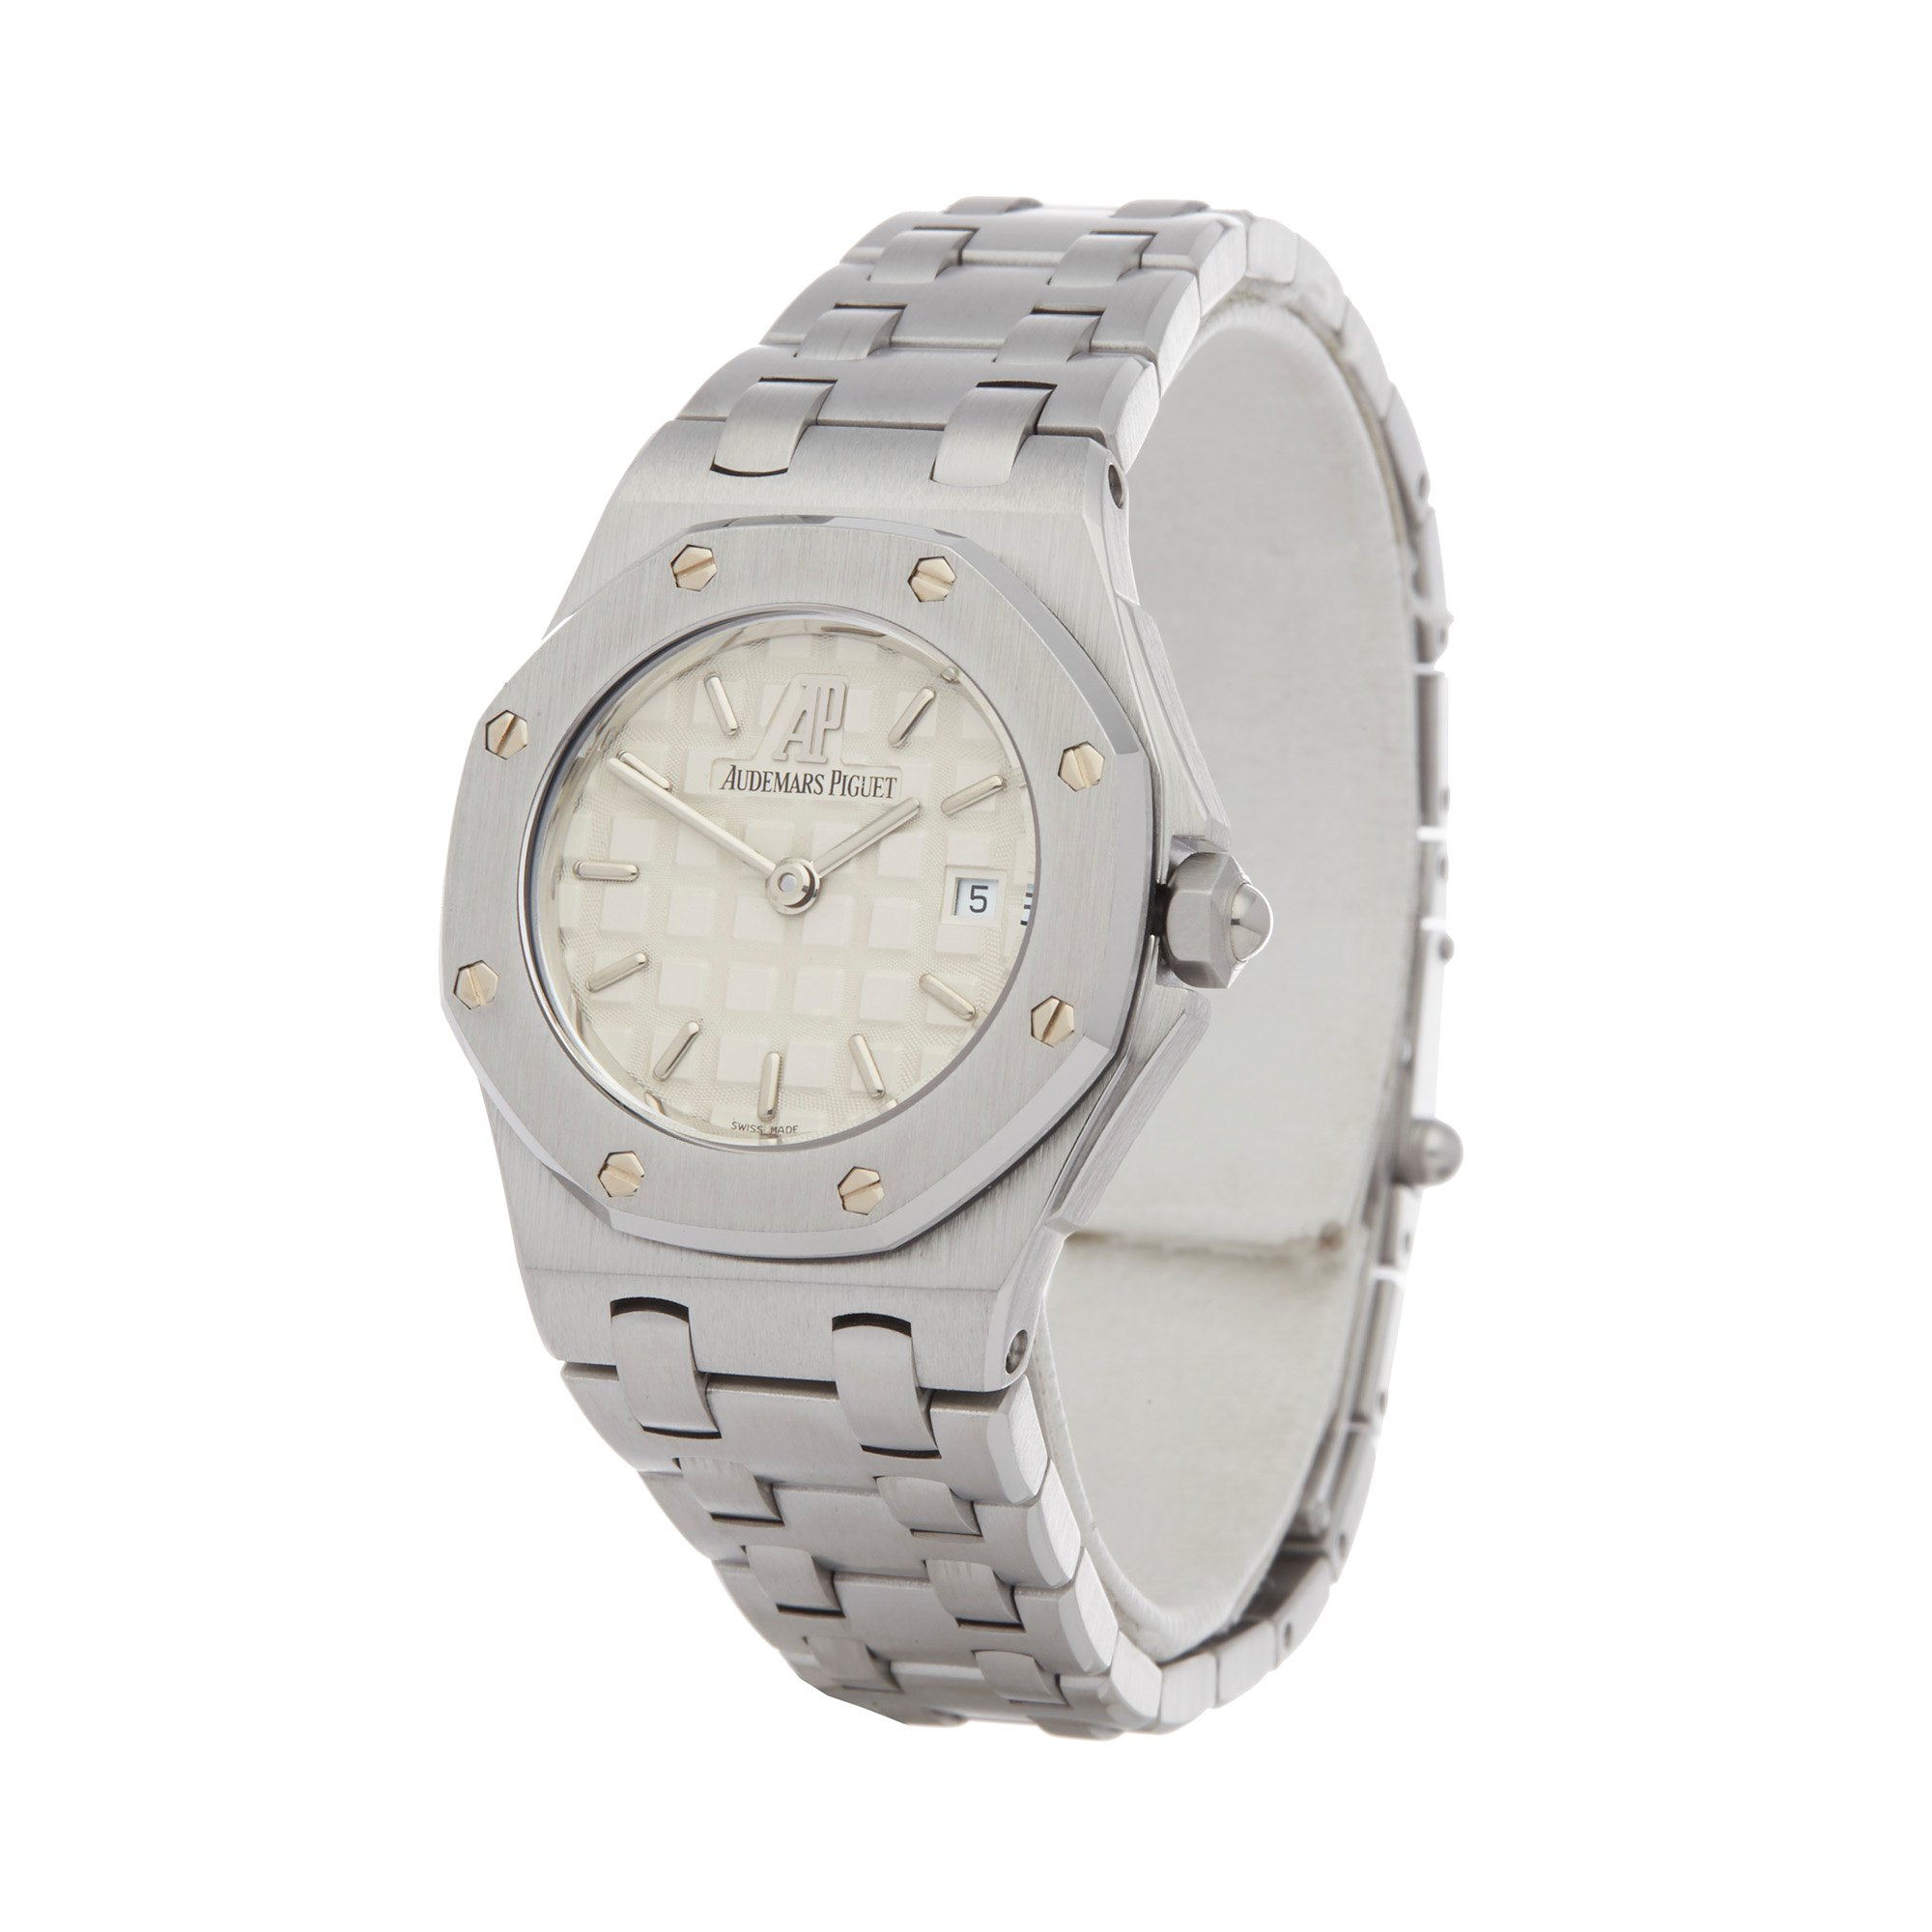 Audemars Piguet Royal Oak Offshore Lady Stainless Steel 67150ST.OO.1108ST.03